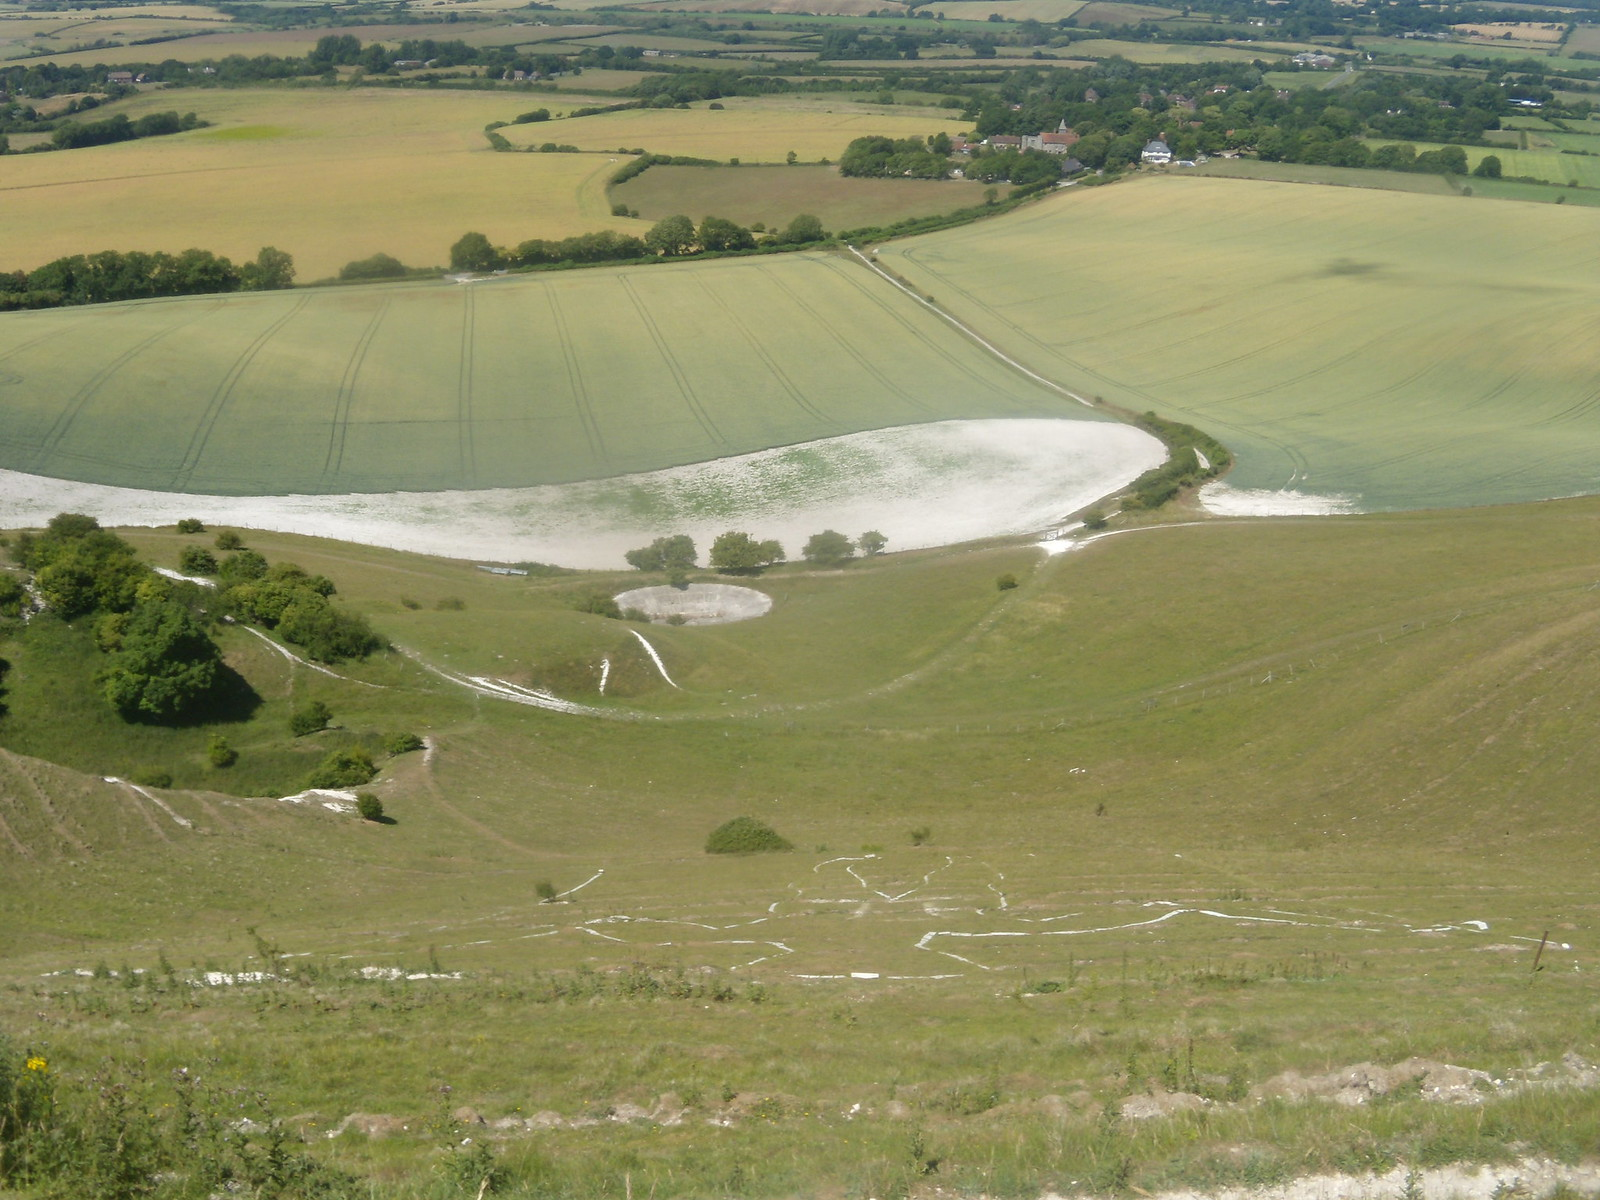 Looking down on Long Man Berwick to Birling Gap